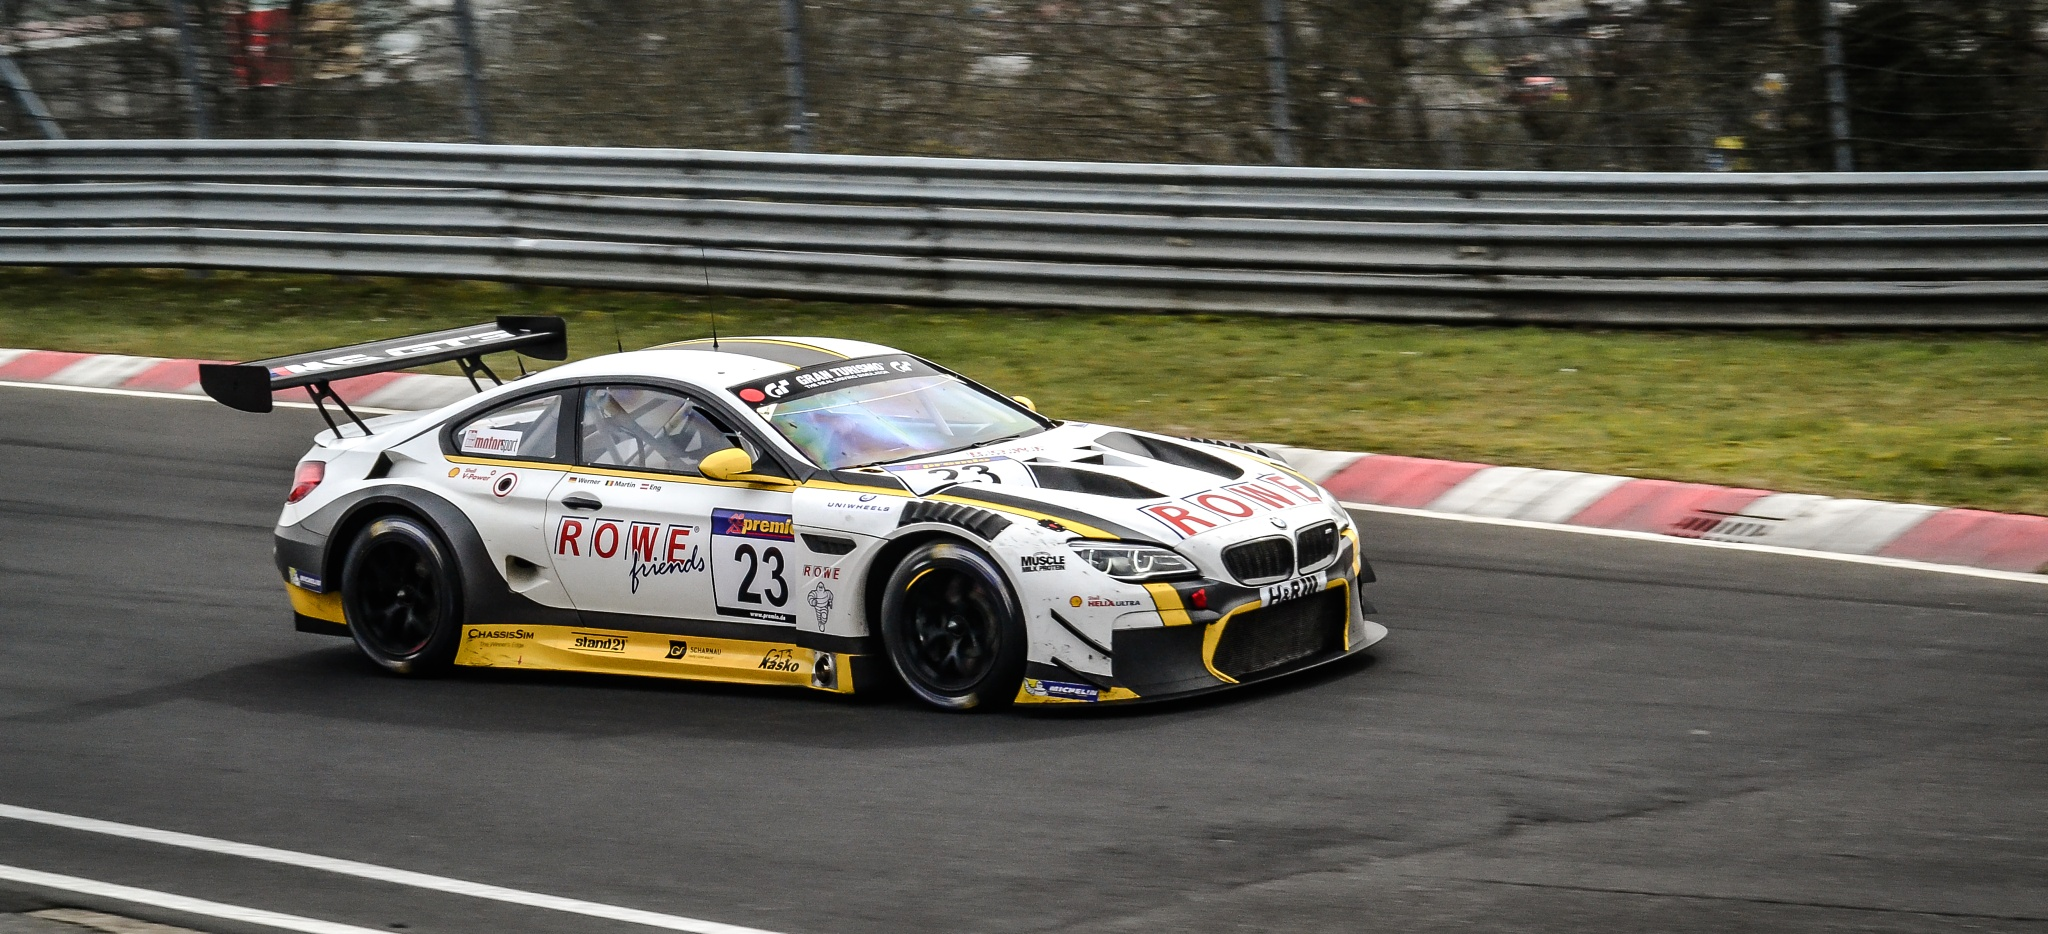 Rowe_Racing_BMW_M6_GT3  by TheHogrebe